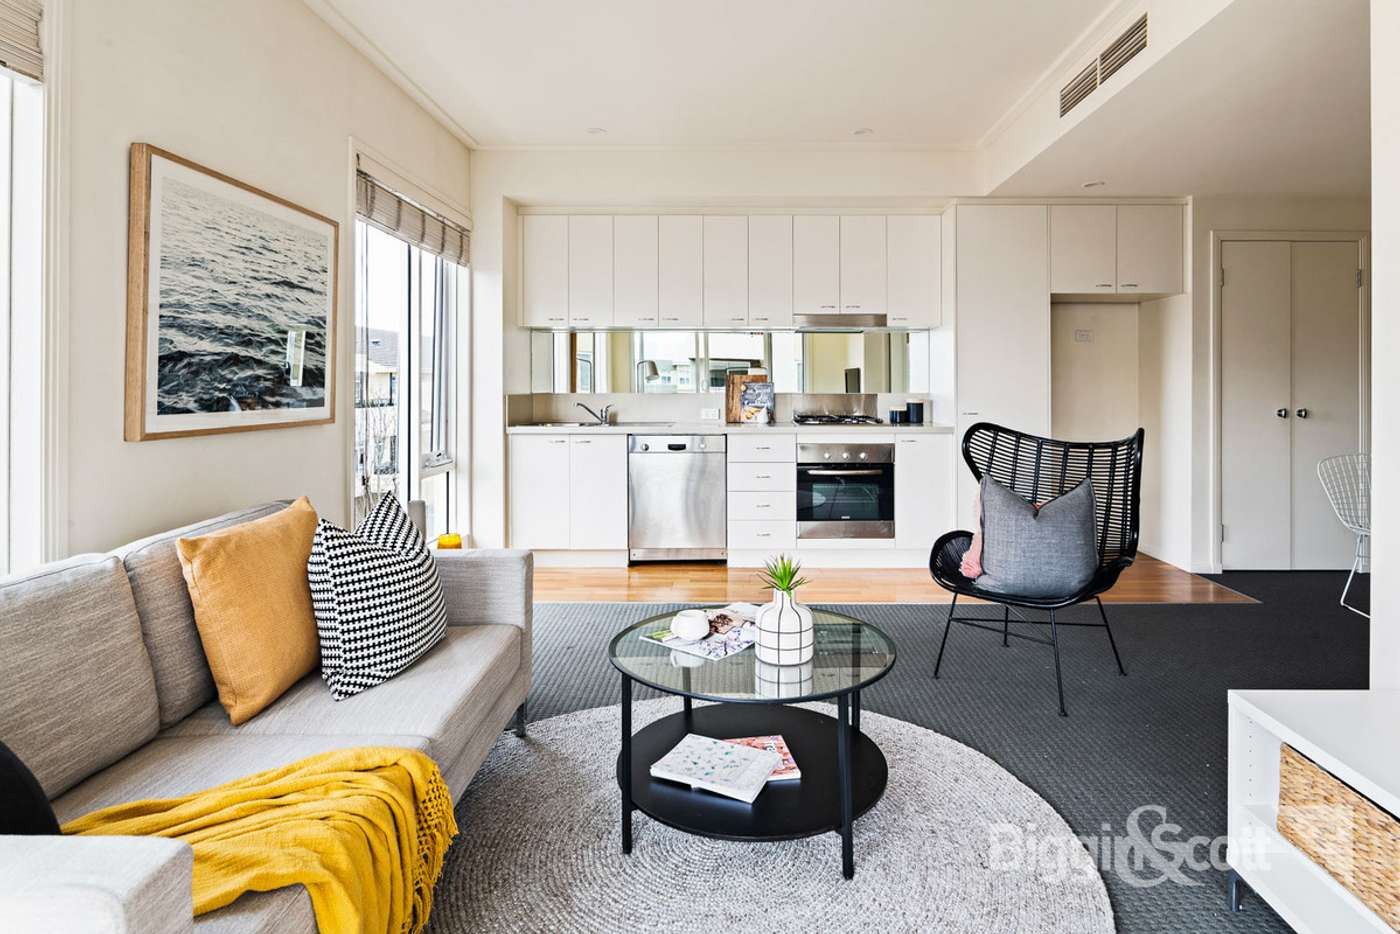 Main view of Homely apartment listing, 12/3 Seisman Place, Port Melbourne VIC 3207